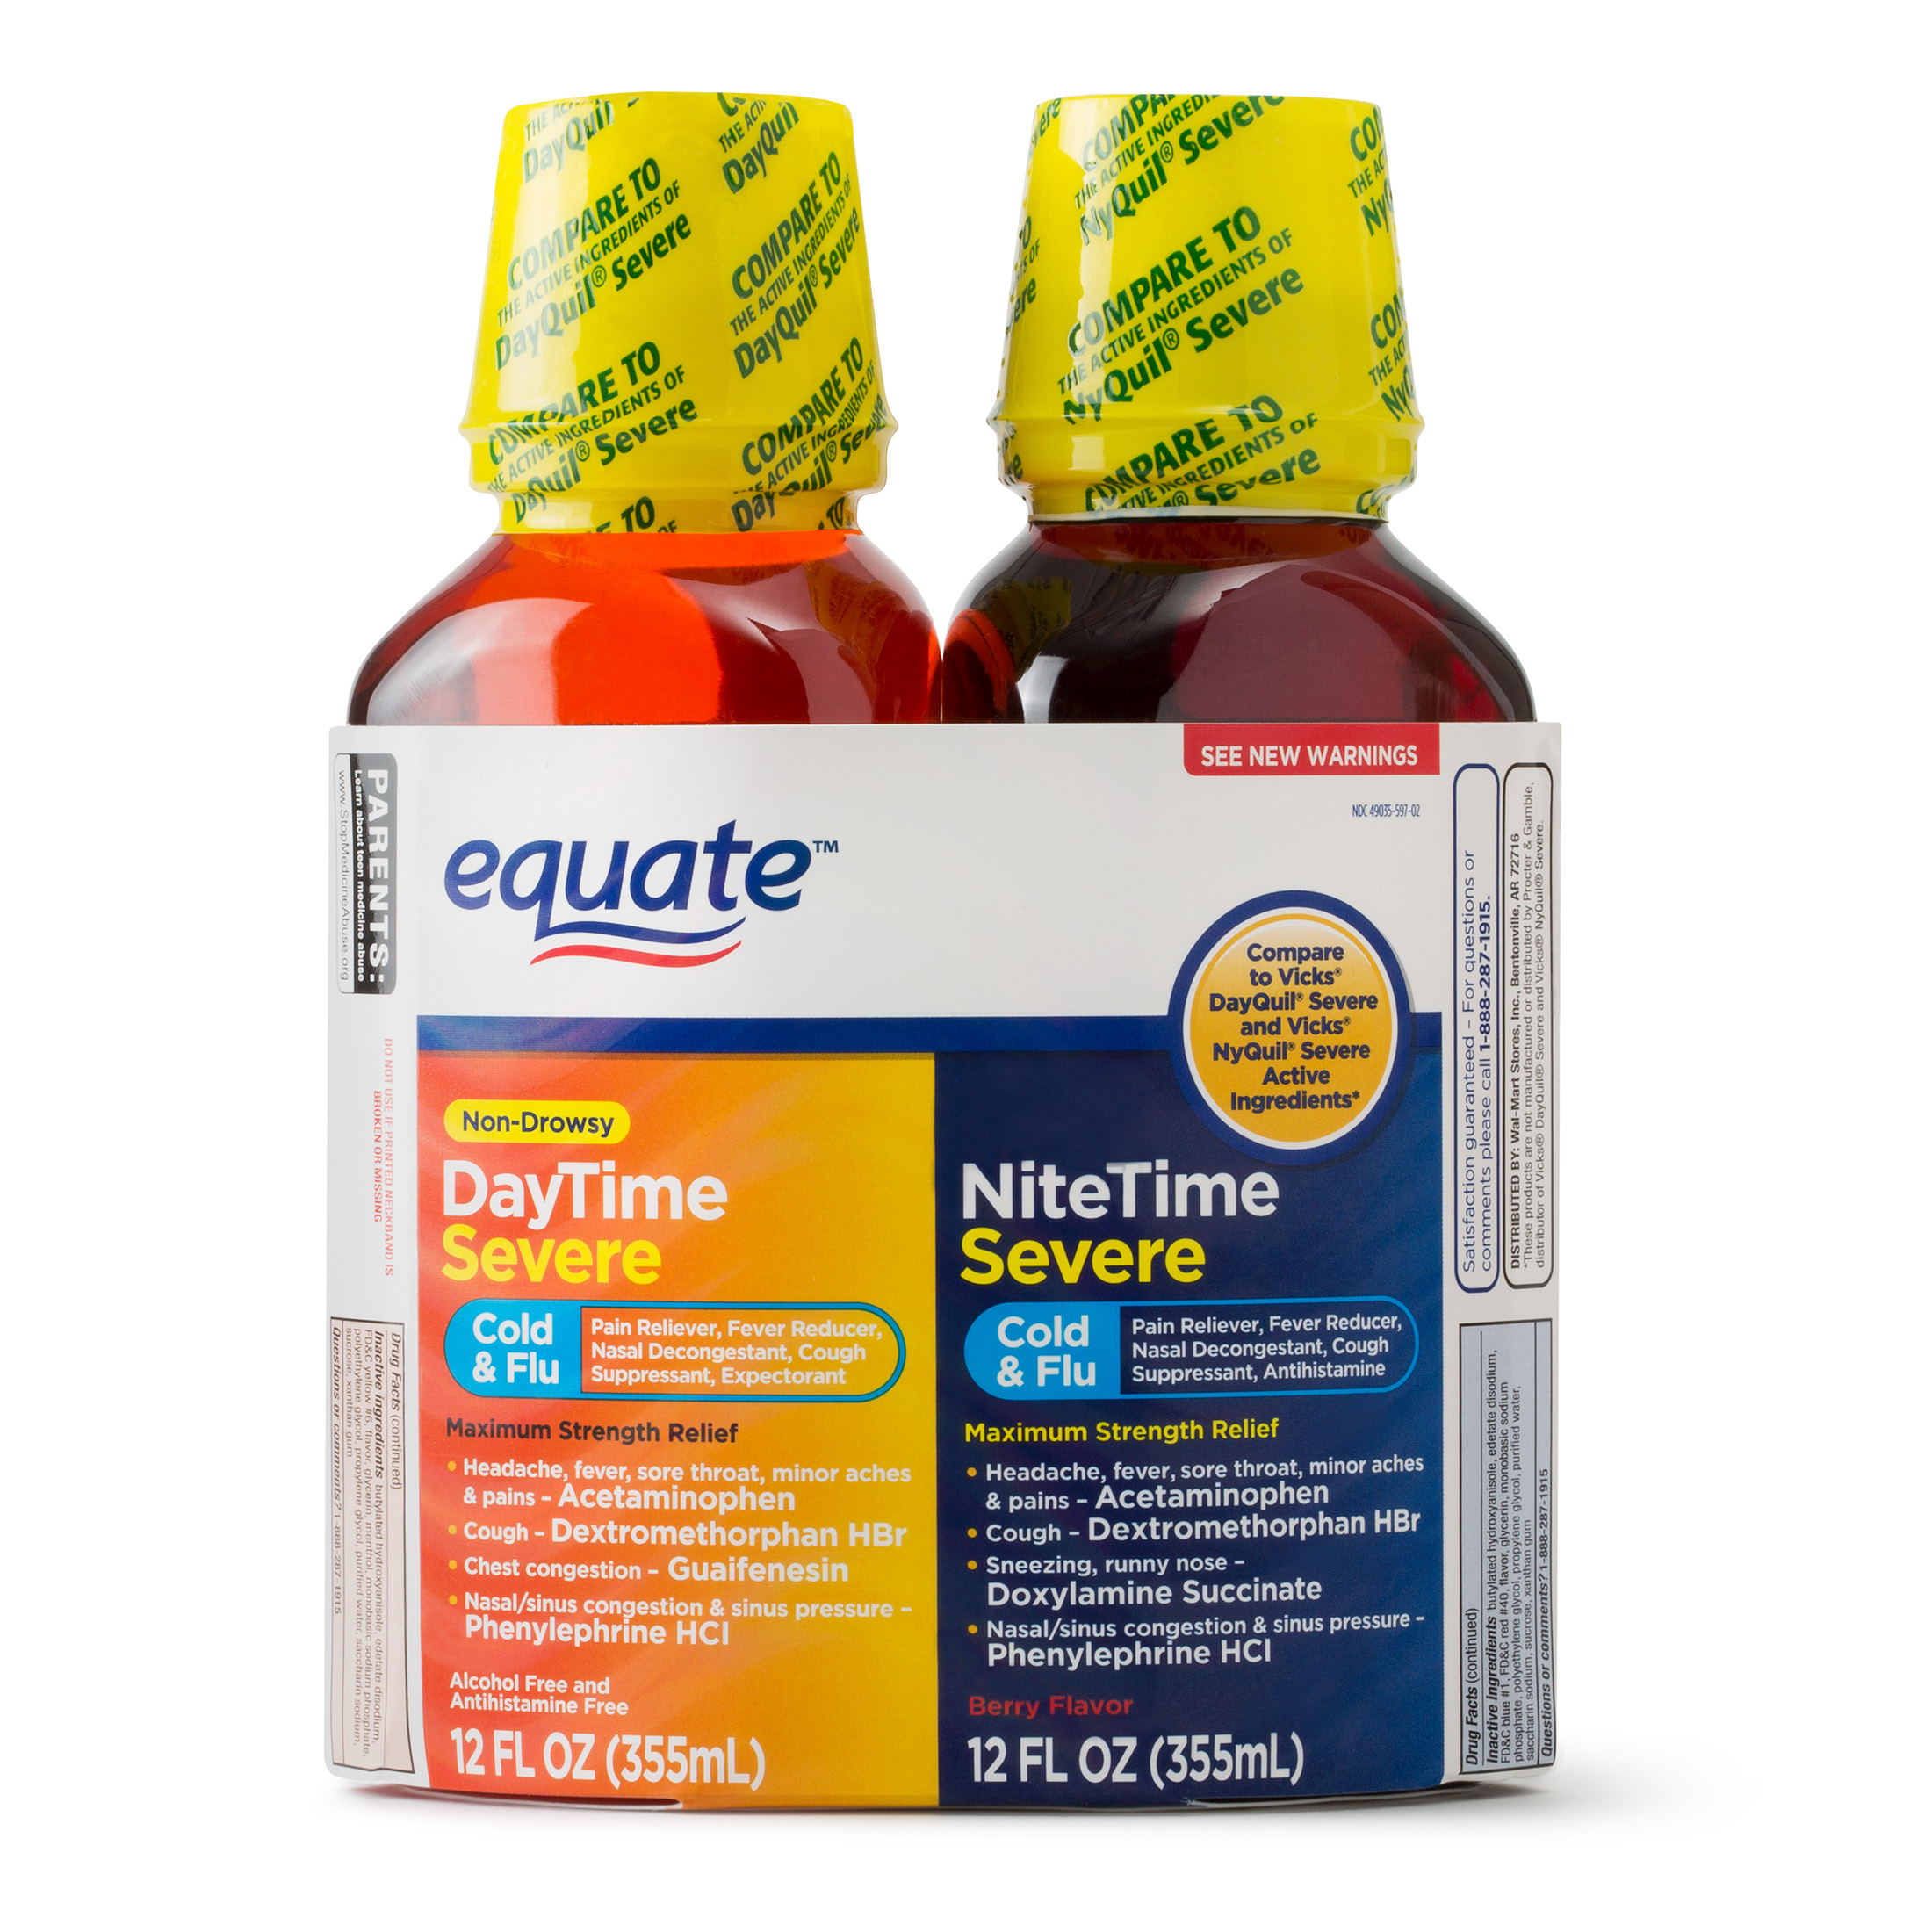 Equate DayTime & NiteTime Severe Cold & Flu Relief, 12 Fl Oz/Bottle